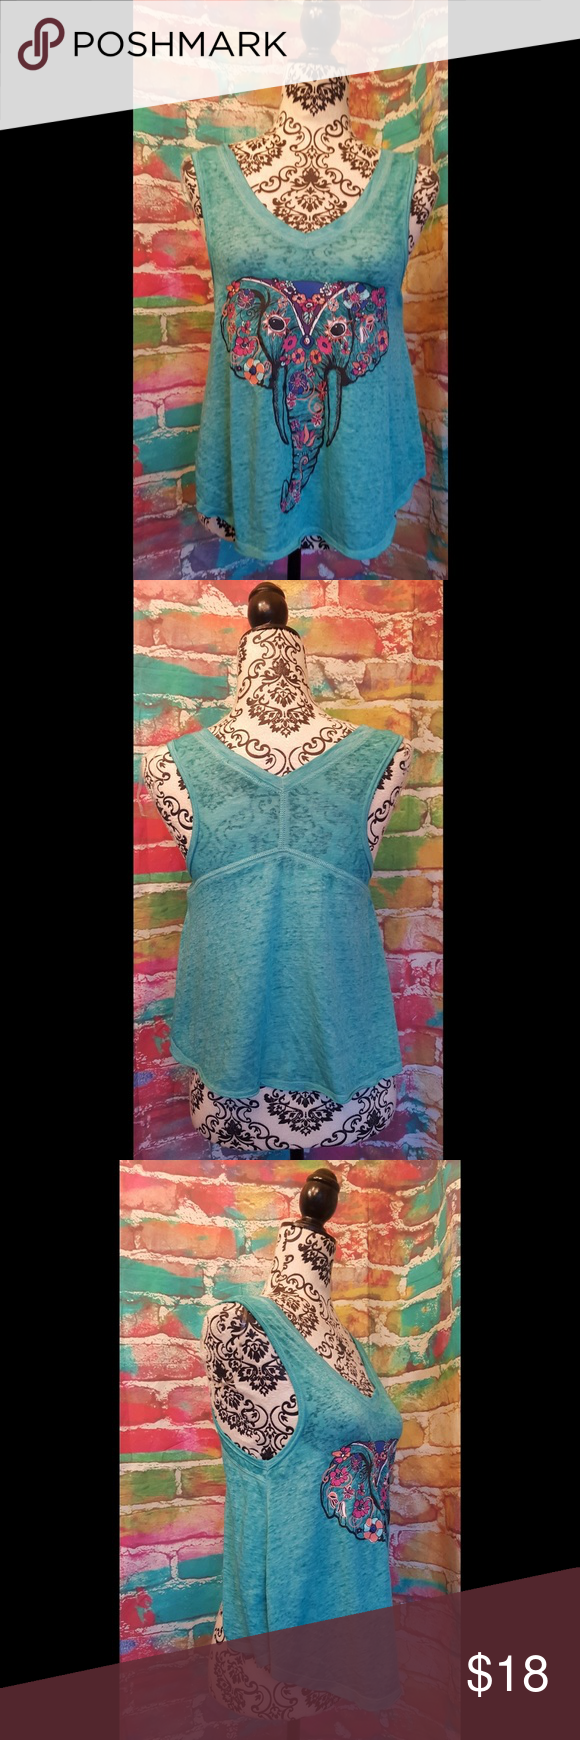 Boho Elephant Burn out Camo Tank Top Medium Boho Graphic top size small shark bite textured burn out cami elephant Yoga women's blouse shirt  Sleeveless tank top  Excellent pre owned condition without any noted flaws If you have any questions, please do not hesitate to ask- we will reply to you as quickly as possible. Tops Tank Tops